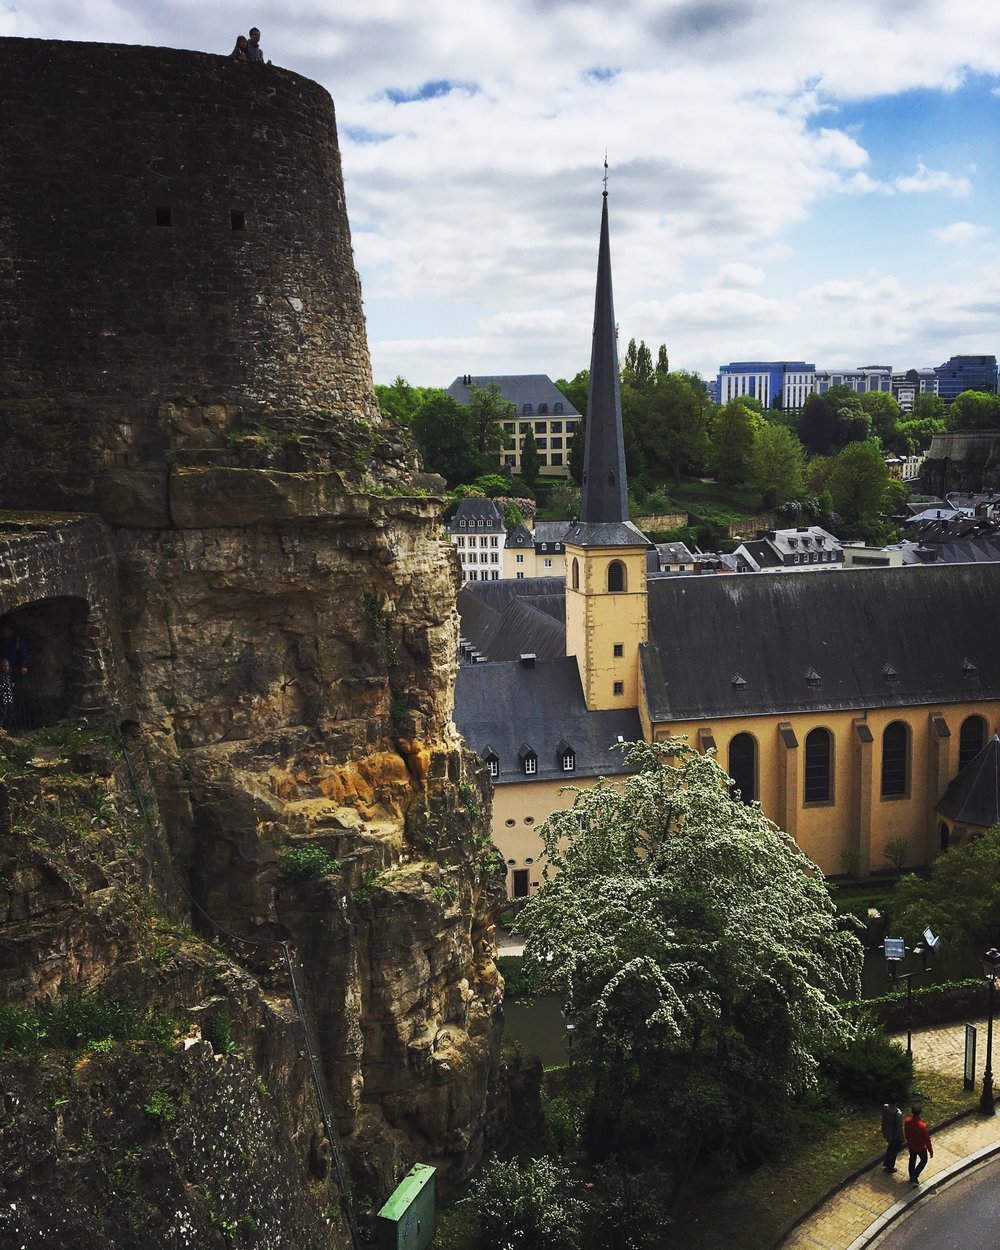 The Bock Casemates overlooks the city atop its 40m.